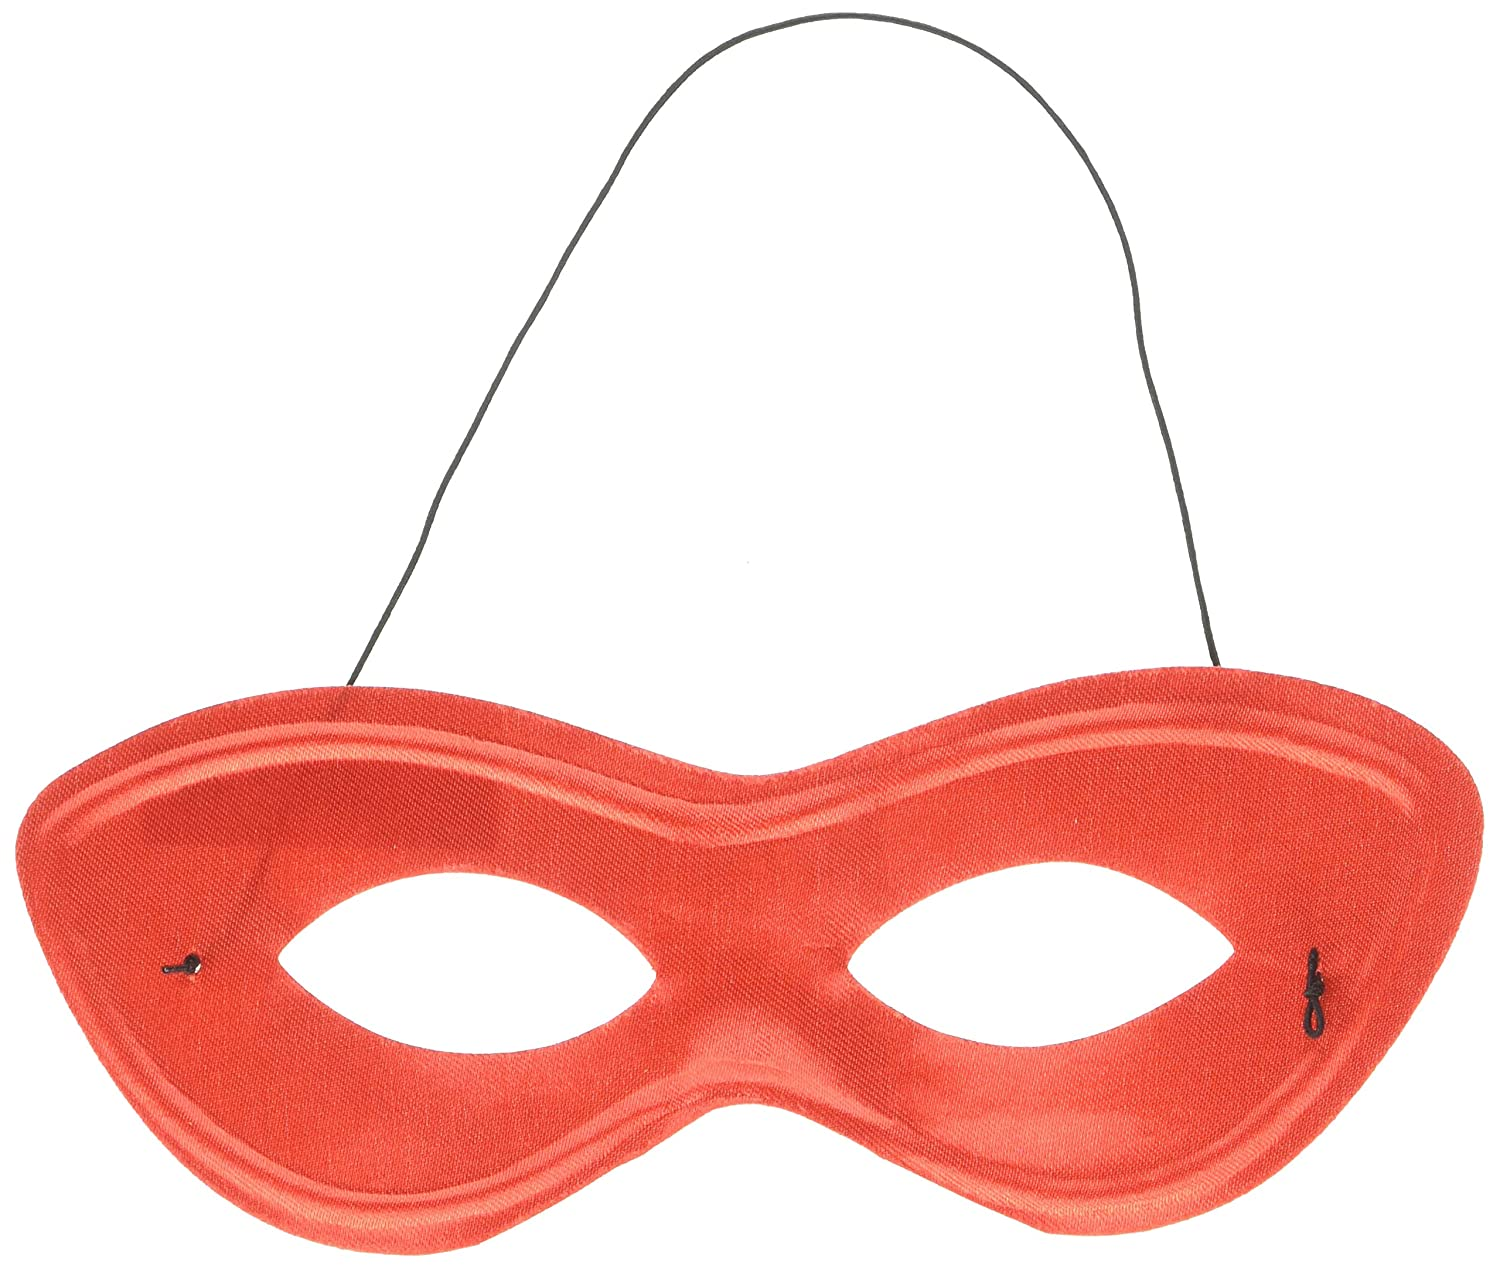 Amscan 395936.1 Game Ready Team Spirit Party Super Hero Mask Accessory, Black, One Size, 12ct, 2 7/8' x 8 1/4' 2 7/8 x 8 1/4